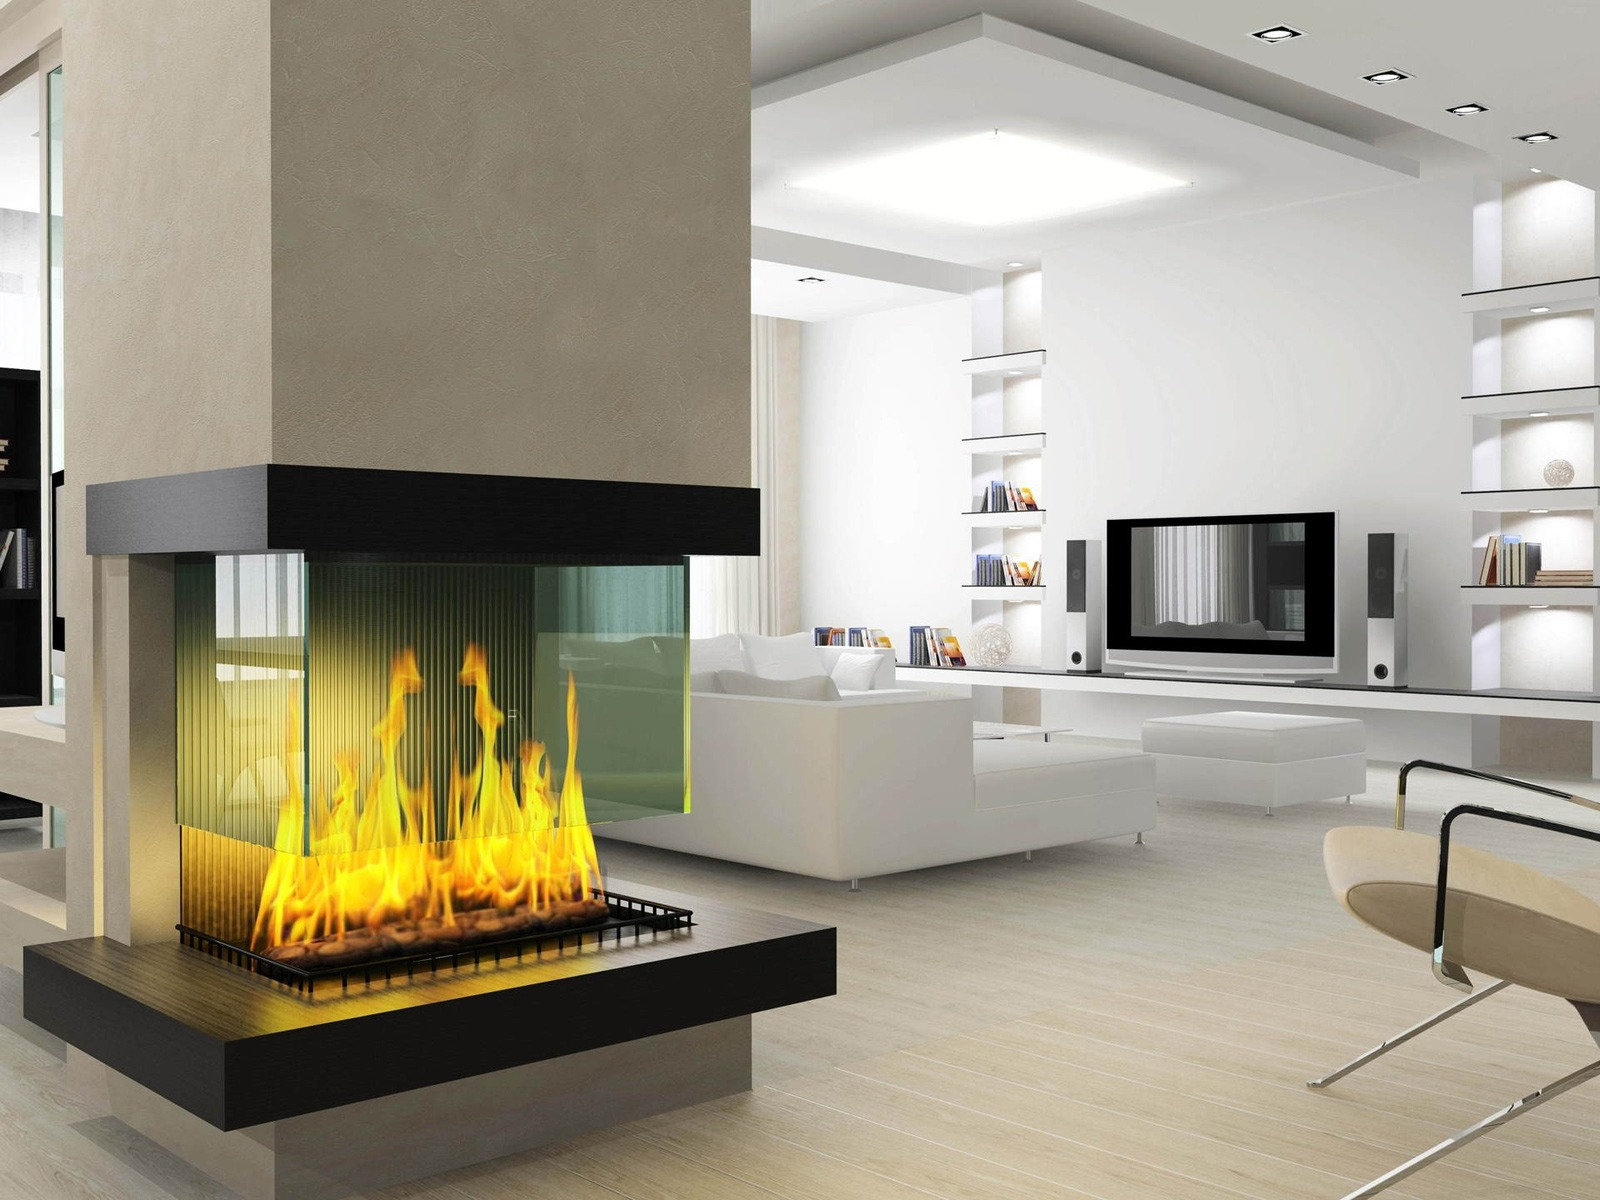 Open fireplace designs to warm your home - Modern fireplace ideas for your home ...